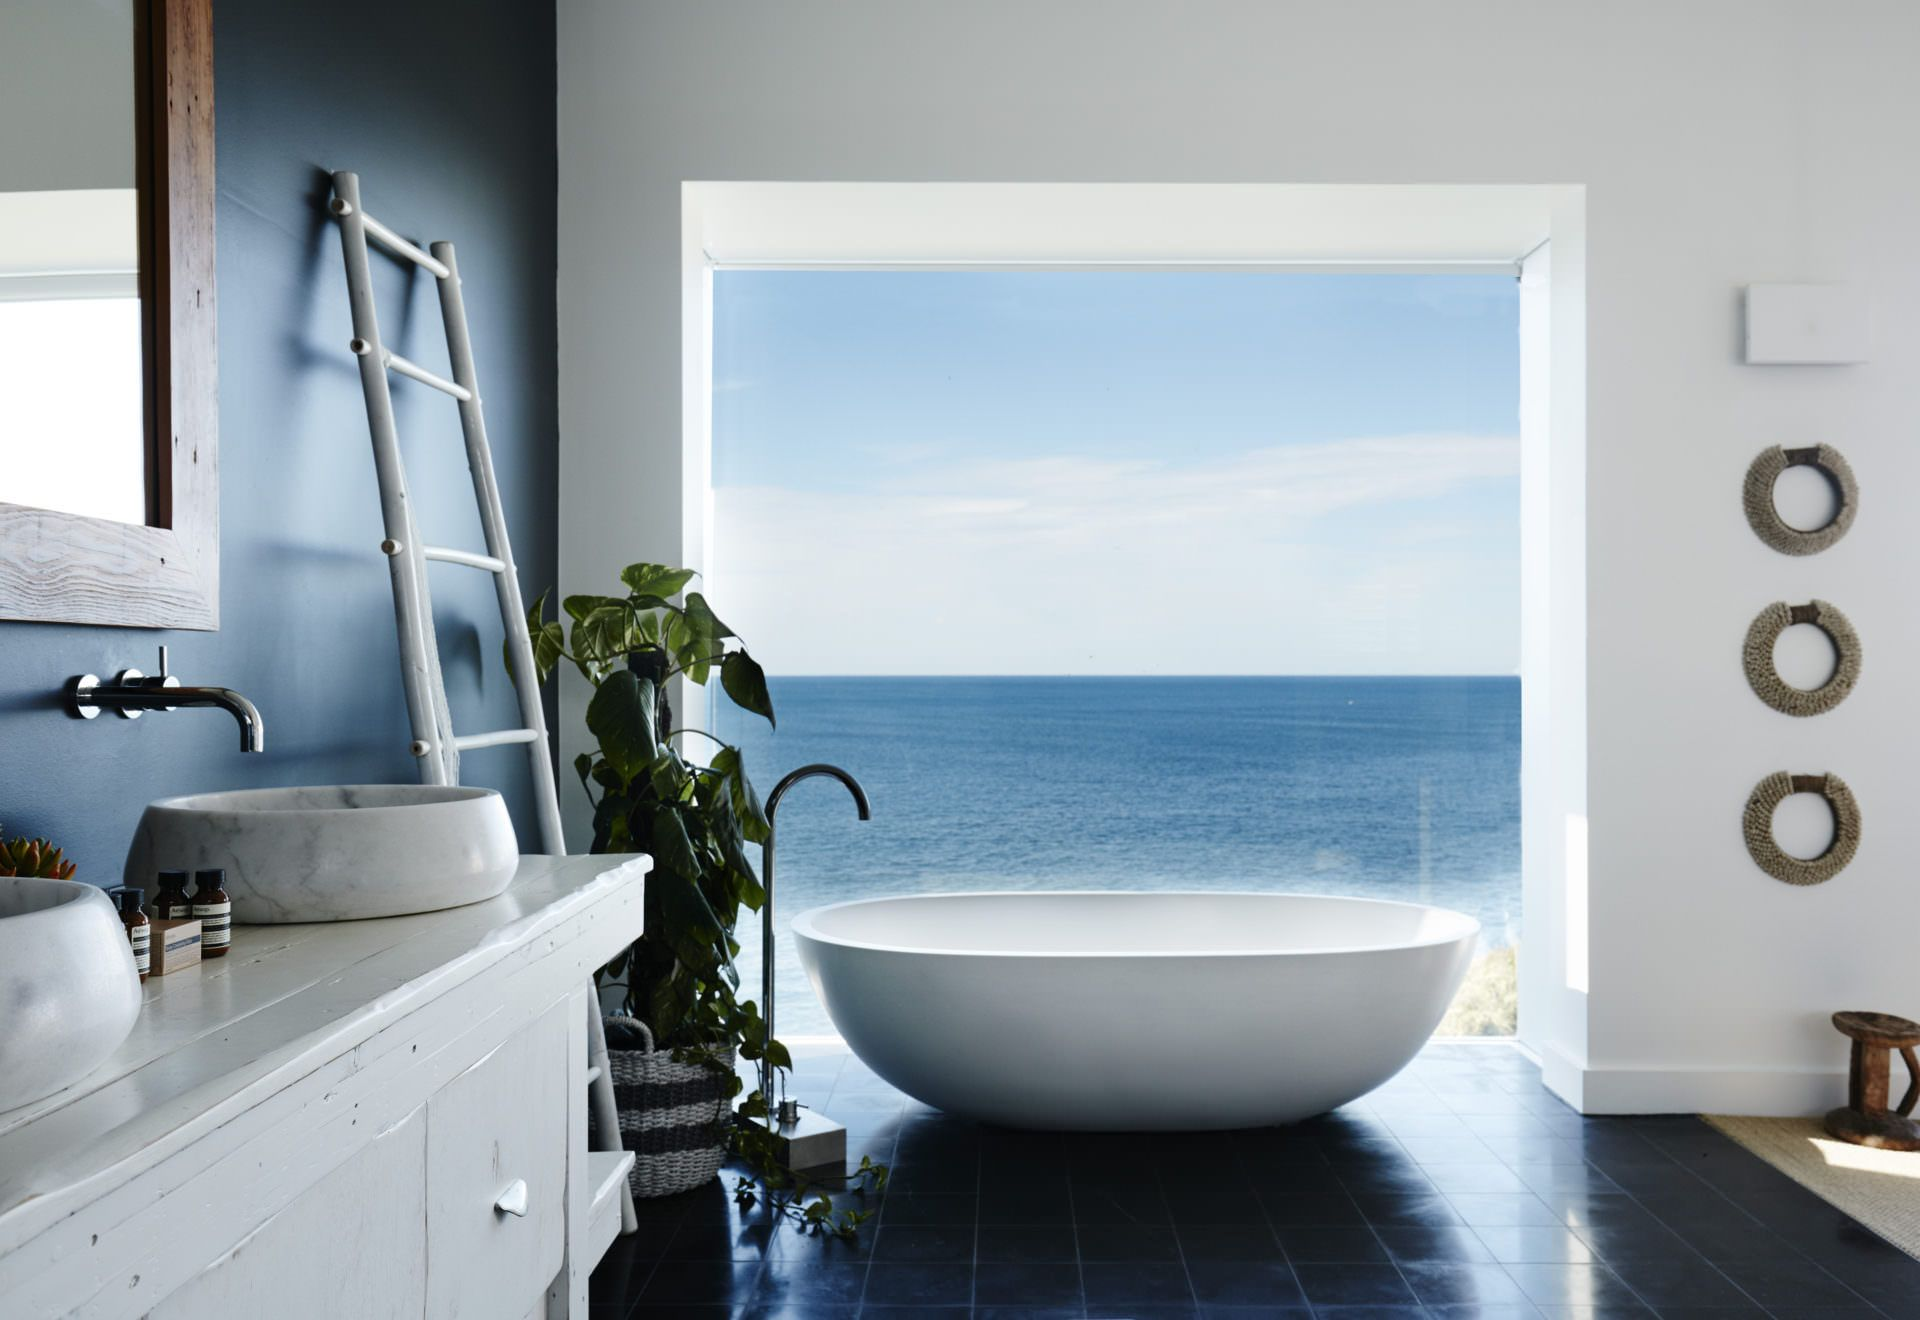 15 breathtaking bathtubs we would love to soak in